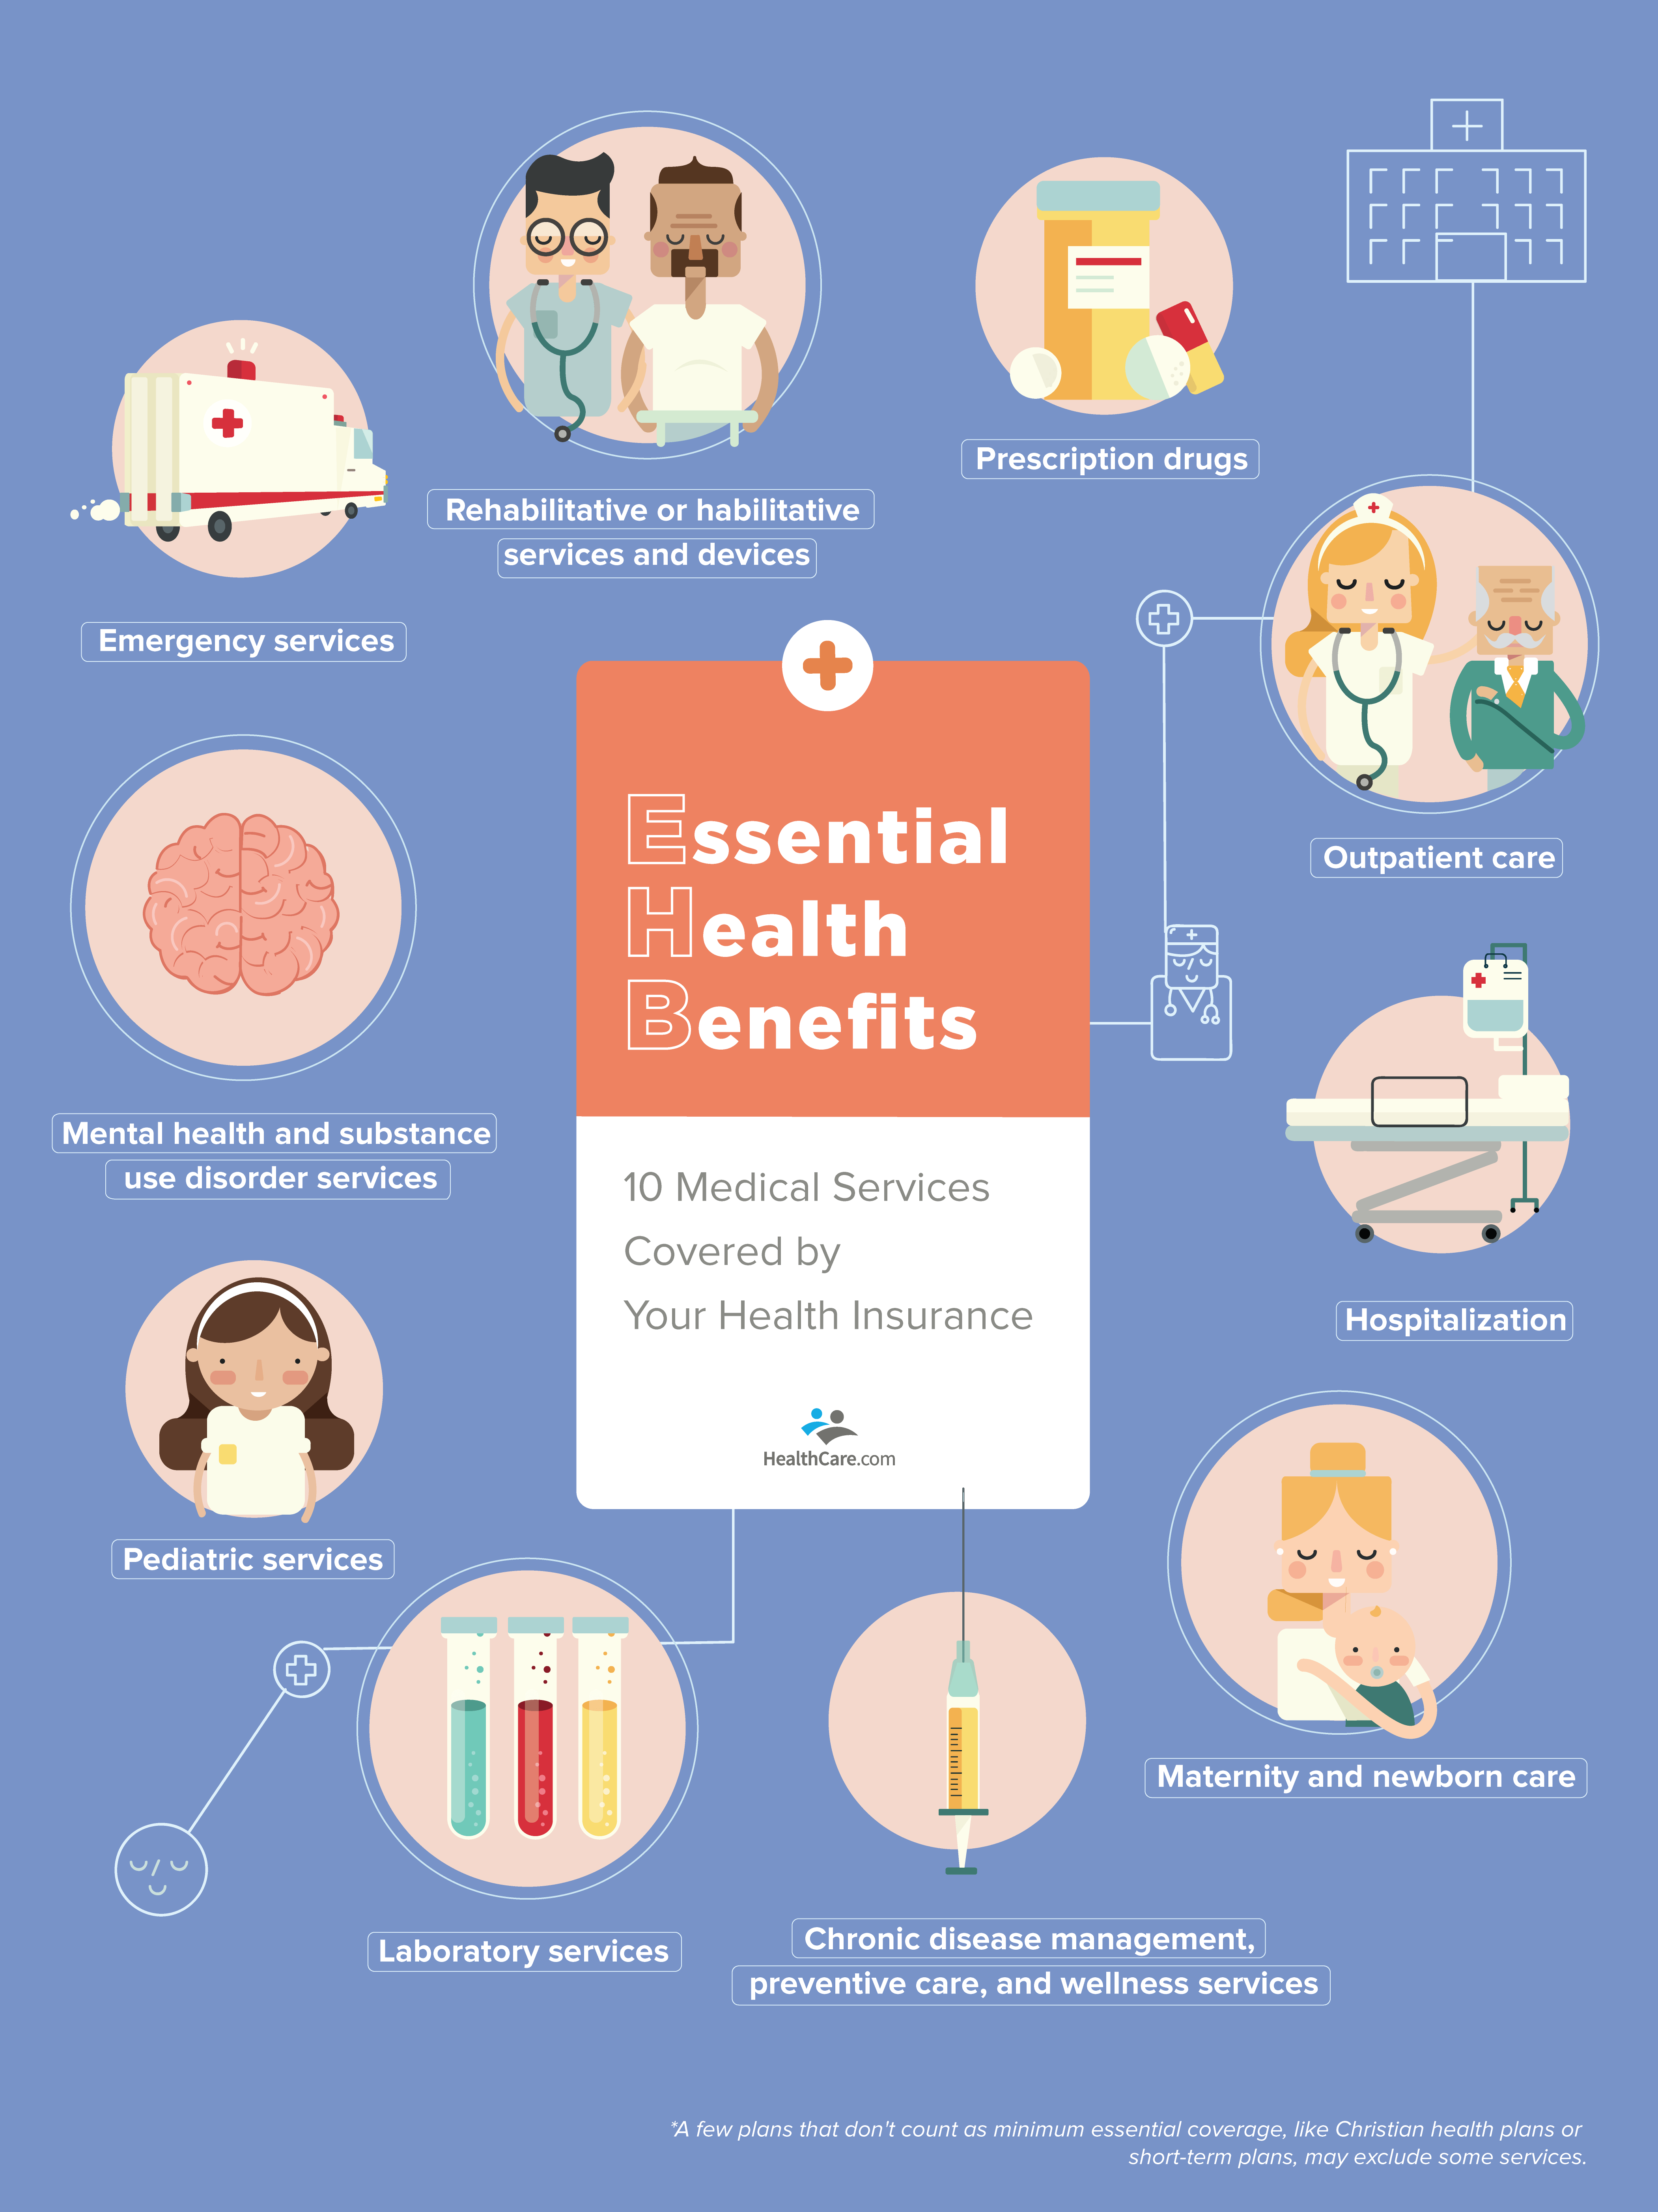 10 essential health benefits infographic | HealthCare.com